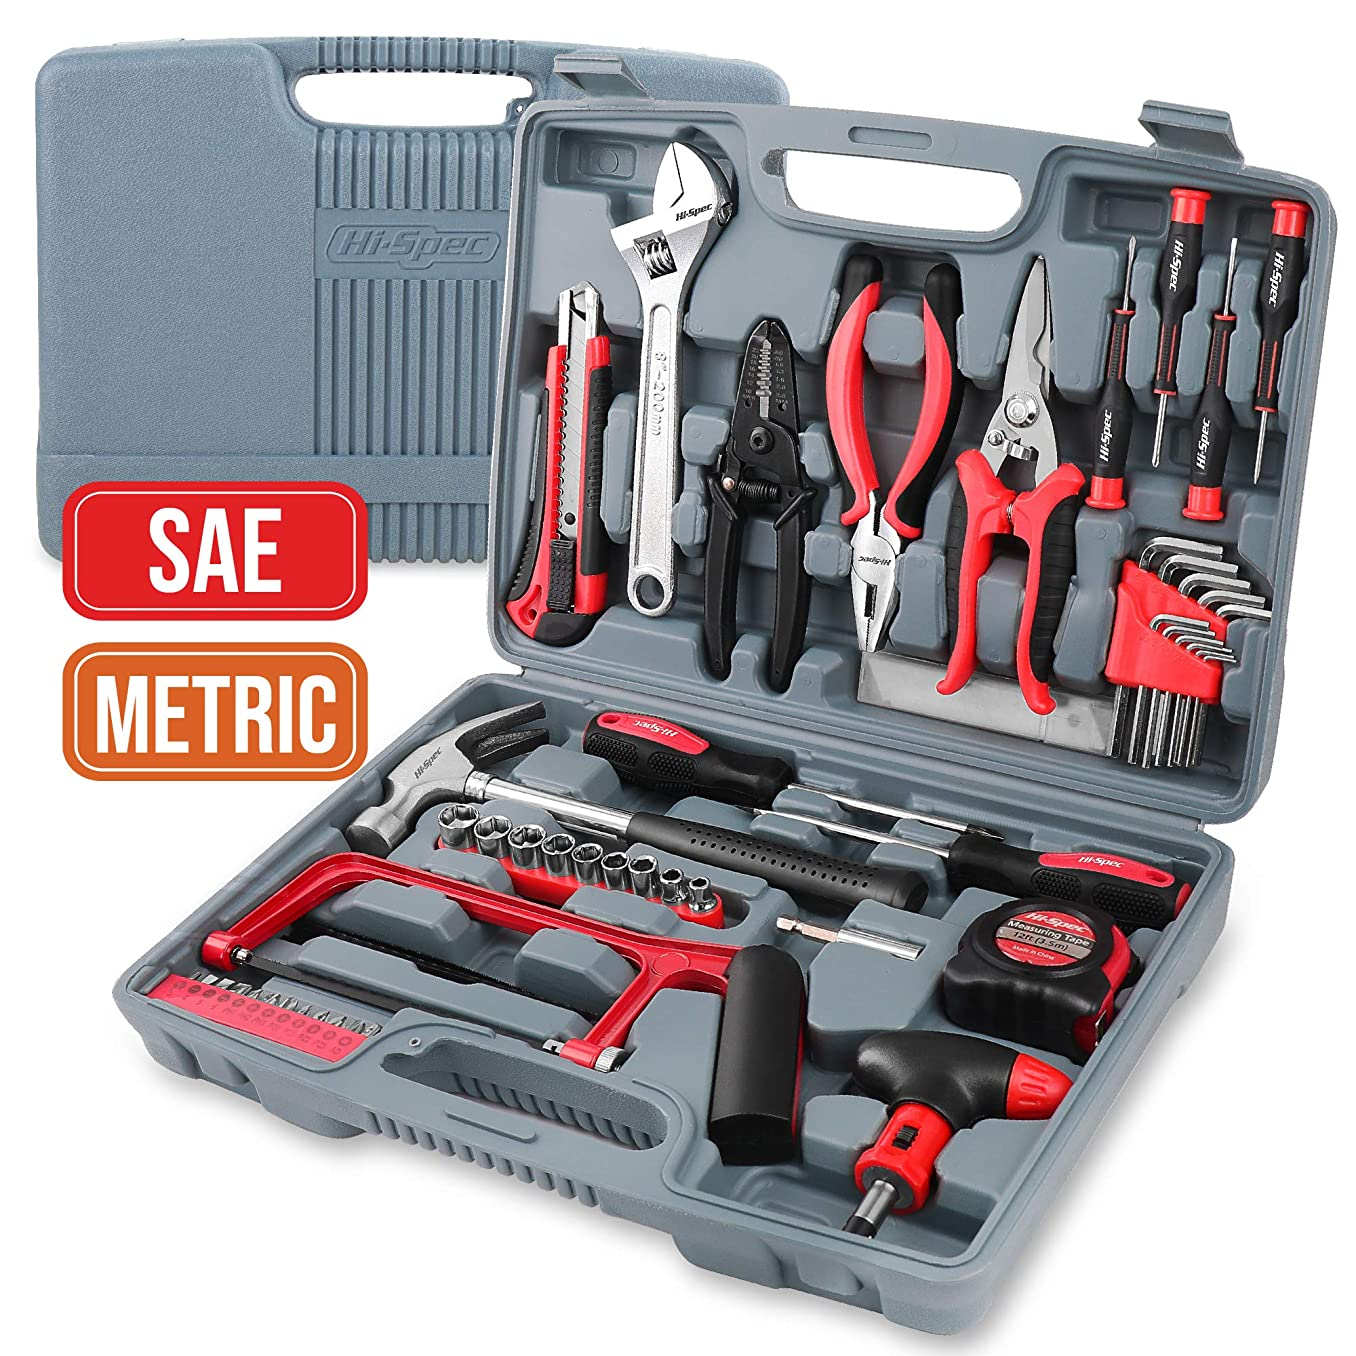 """Hi-Spec 53 Piece Household Tool Kit with Claw Hammer, Hack Saw, Wire Strippers, Crimpers, 1/4"""" Drive Sockets, Combination Pliers & Ratcheting Bit Driver - Automotive, Electrical, Woodworking Tool Set"""